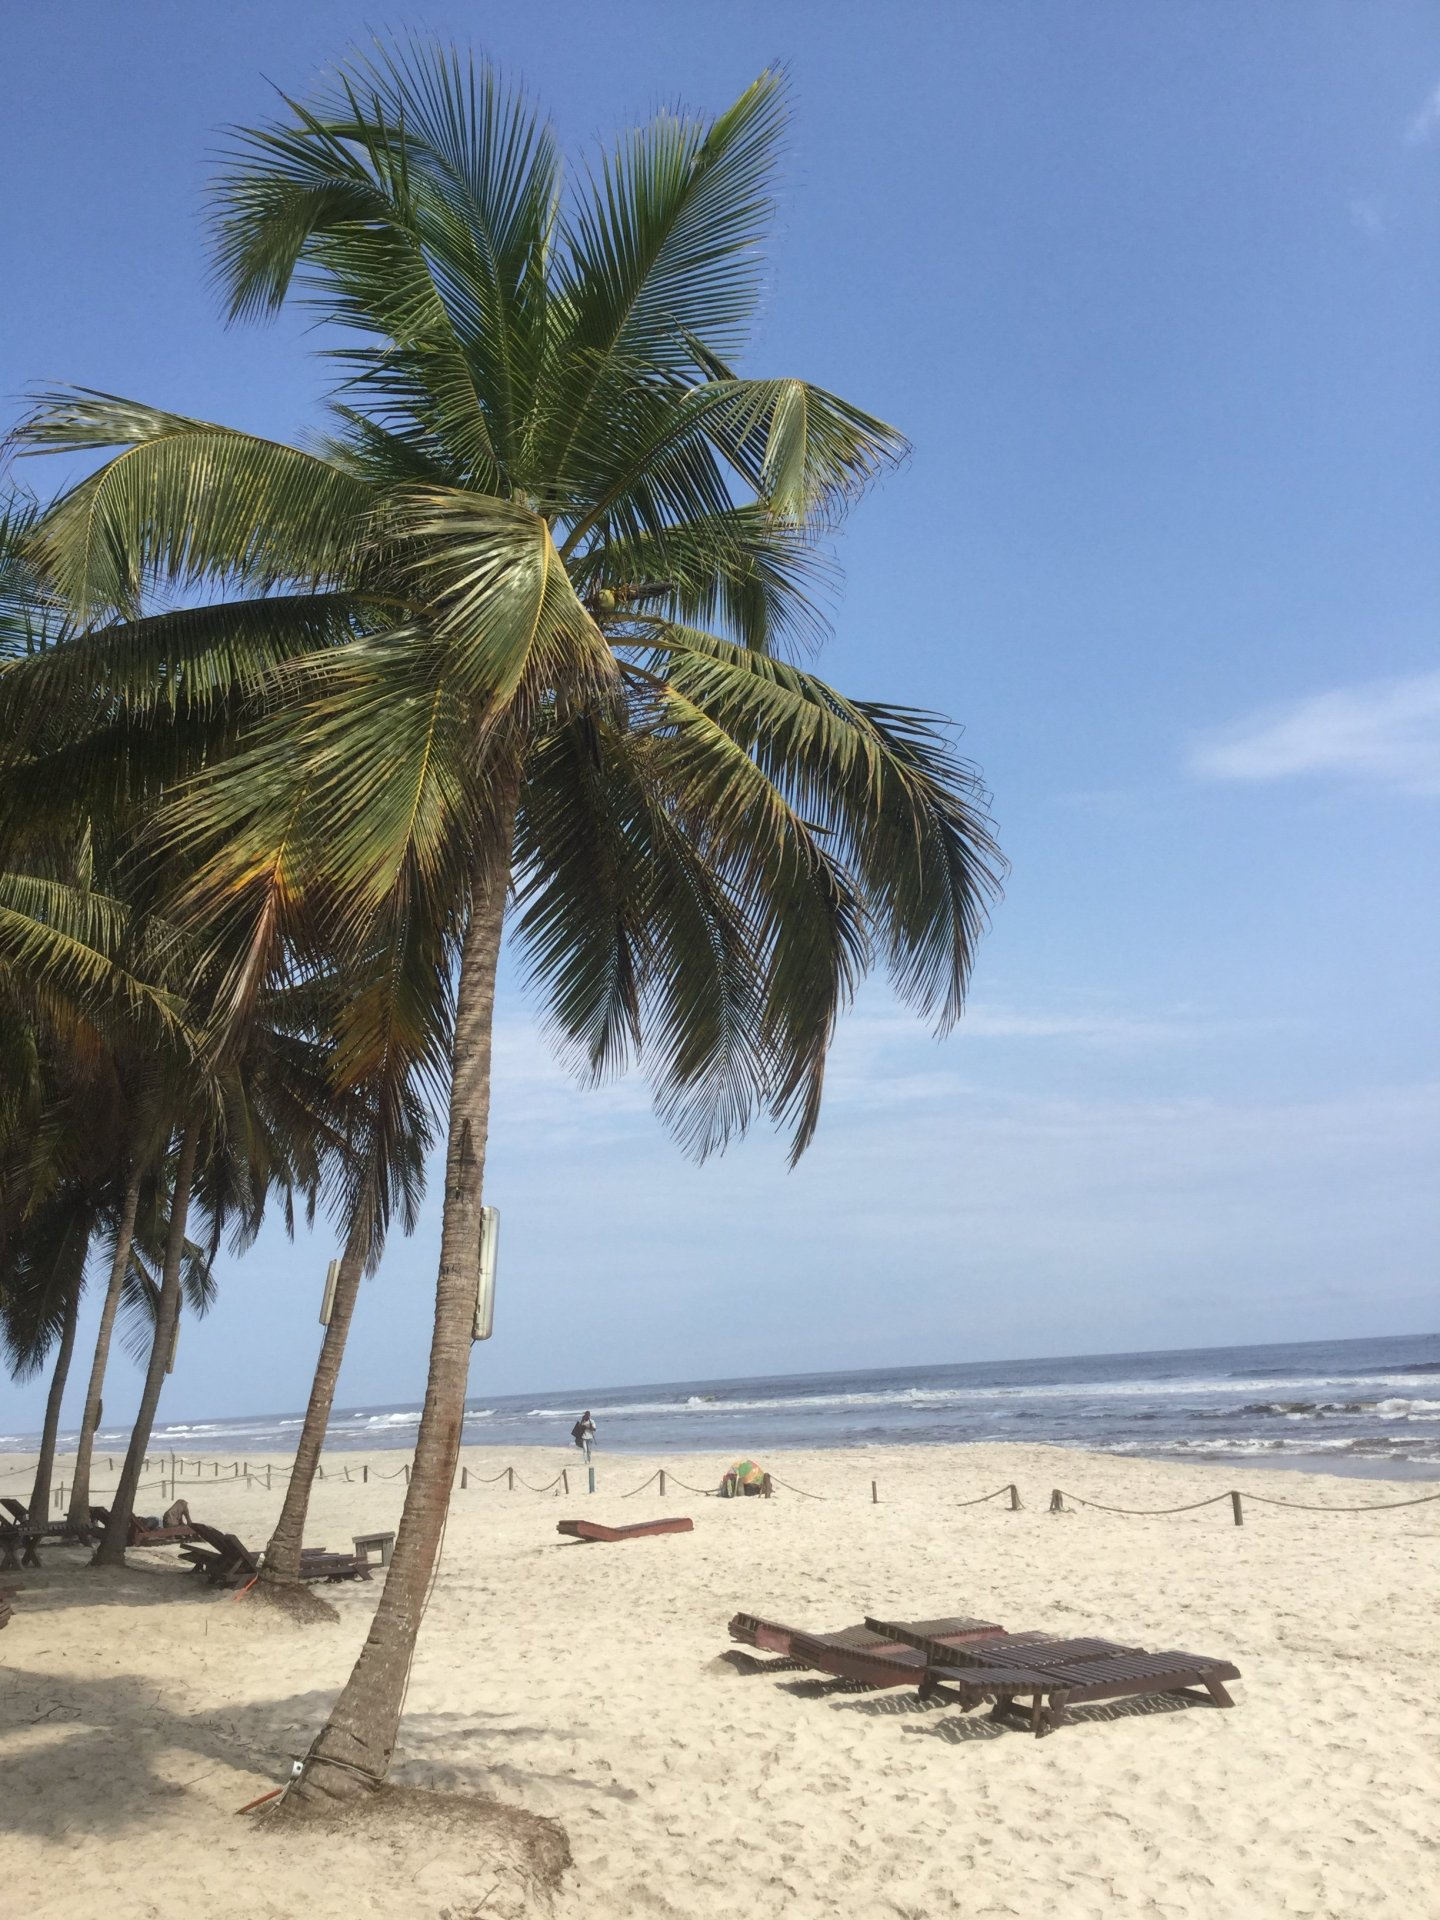 This is Ivory Coast – TIC!